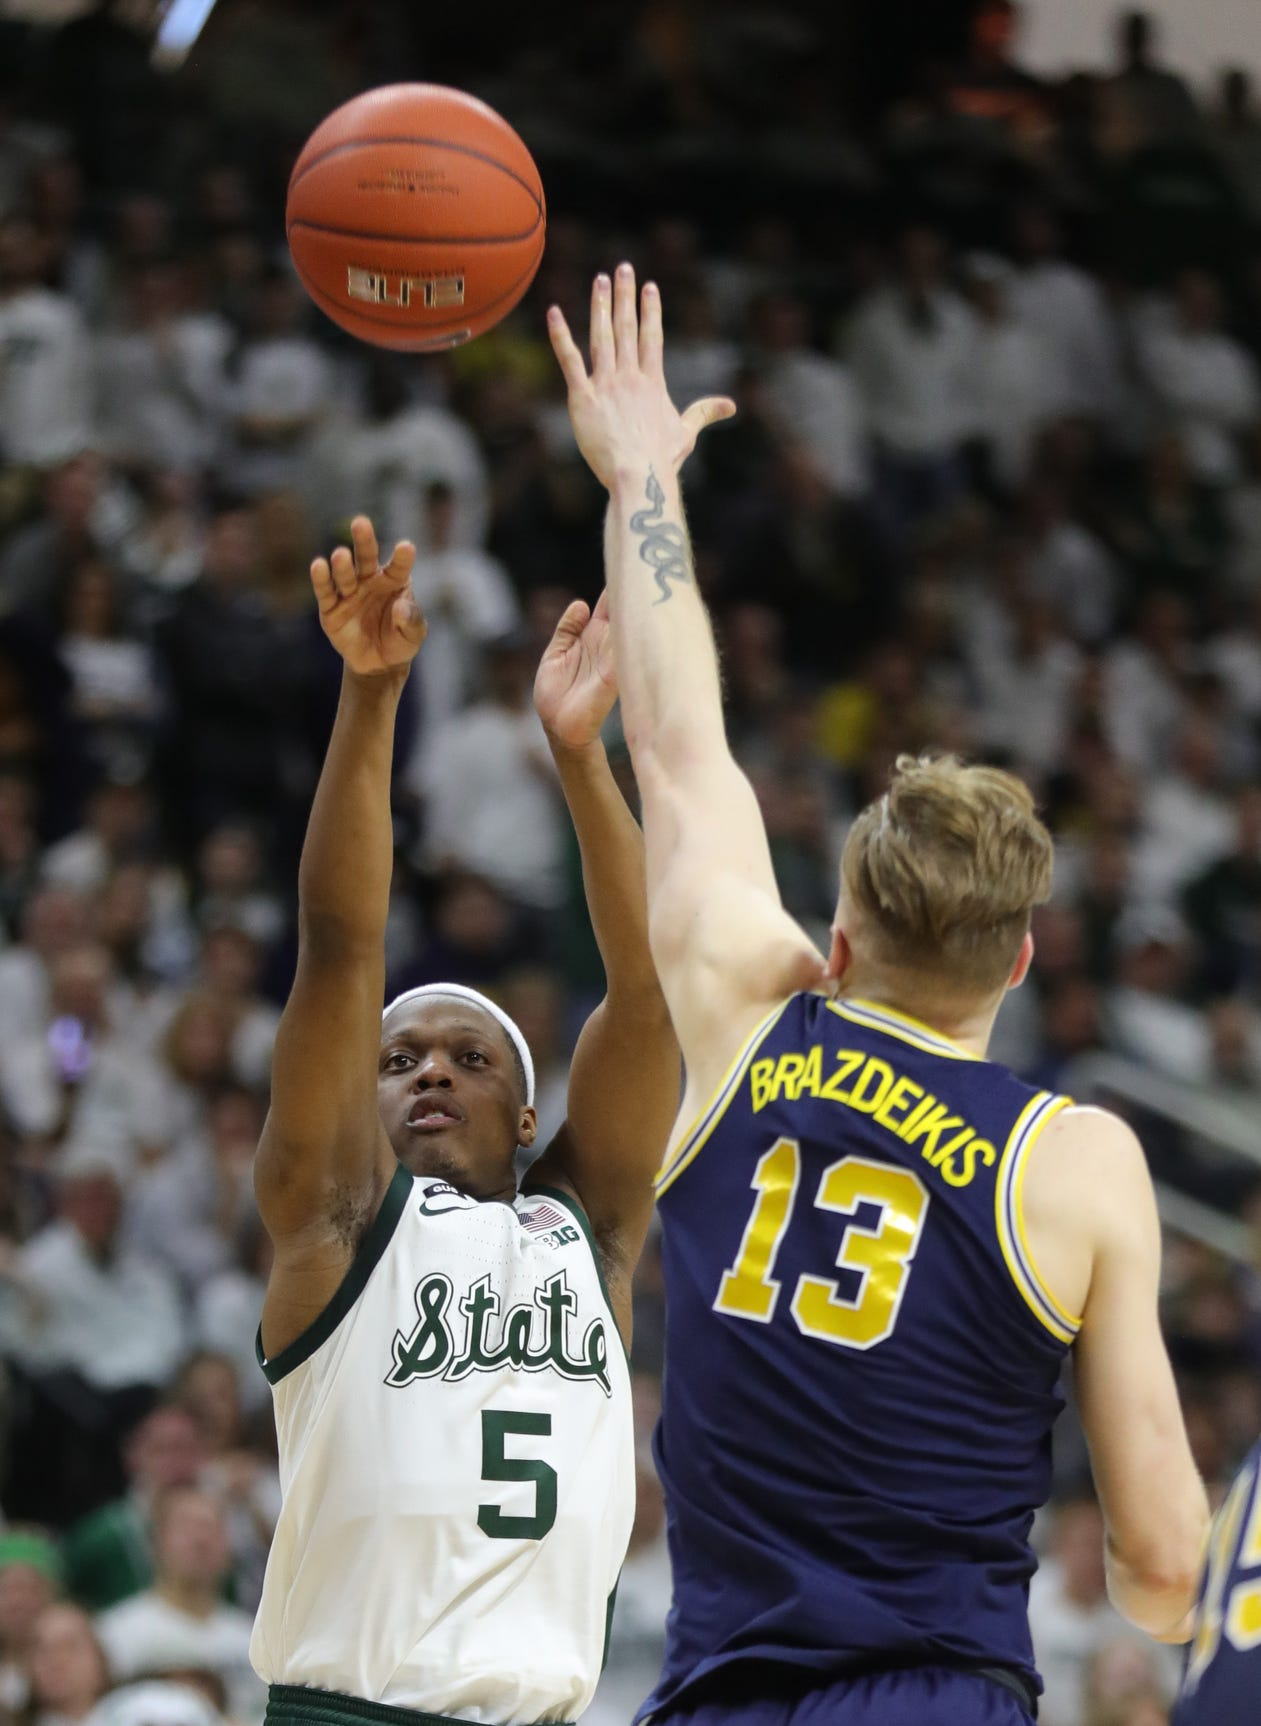 Michigan State guard Cassius Winston scores against Michigan forward Ignas Brazdeikis during the second half Saturday, March 9, 2019 at the Breslin Center in East Lansing.